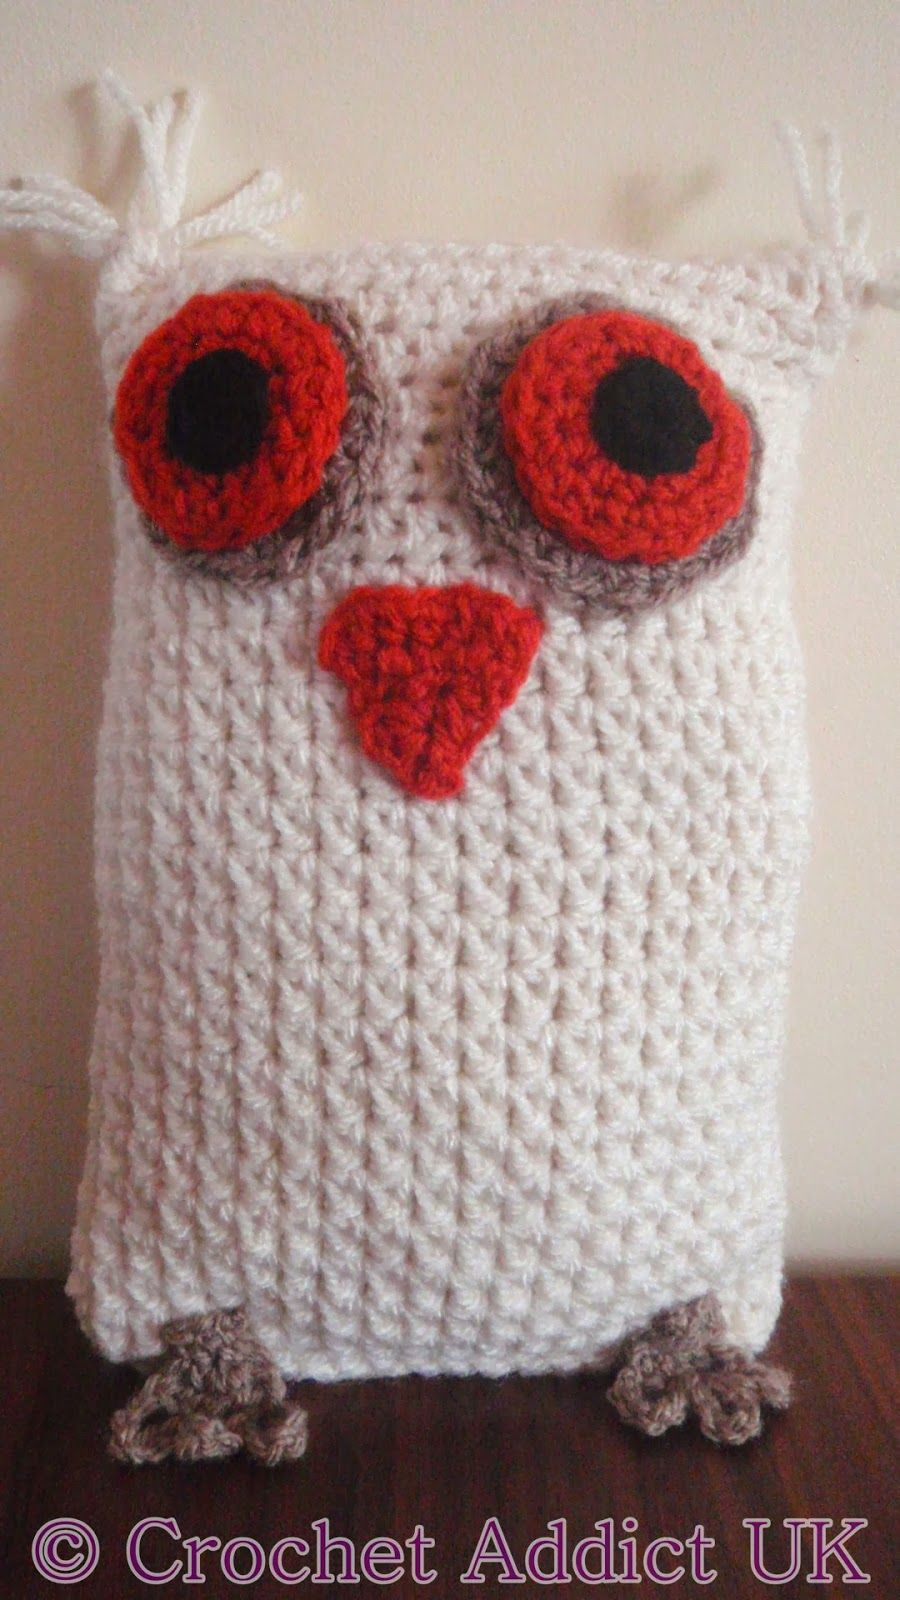 Owl ami free crochet pattern the pattern is in us terms items owl ami free crochet pattern the pattern is in us terms items bankloansurffo Choice Image